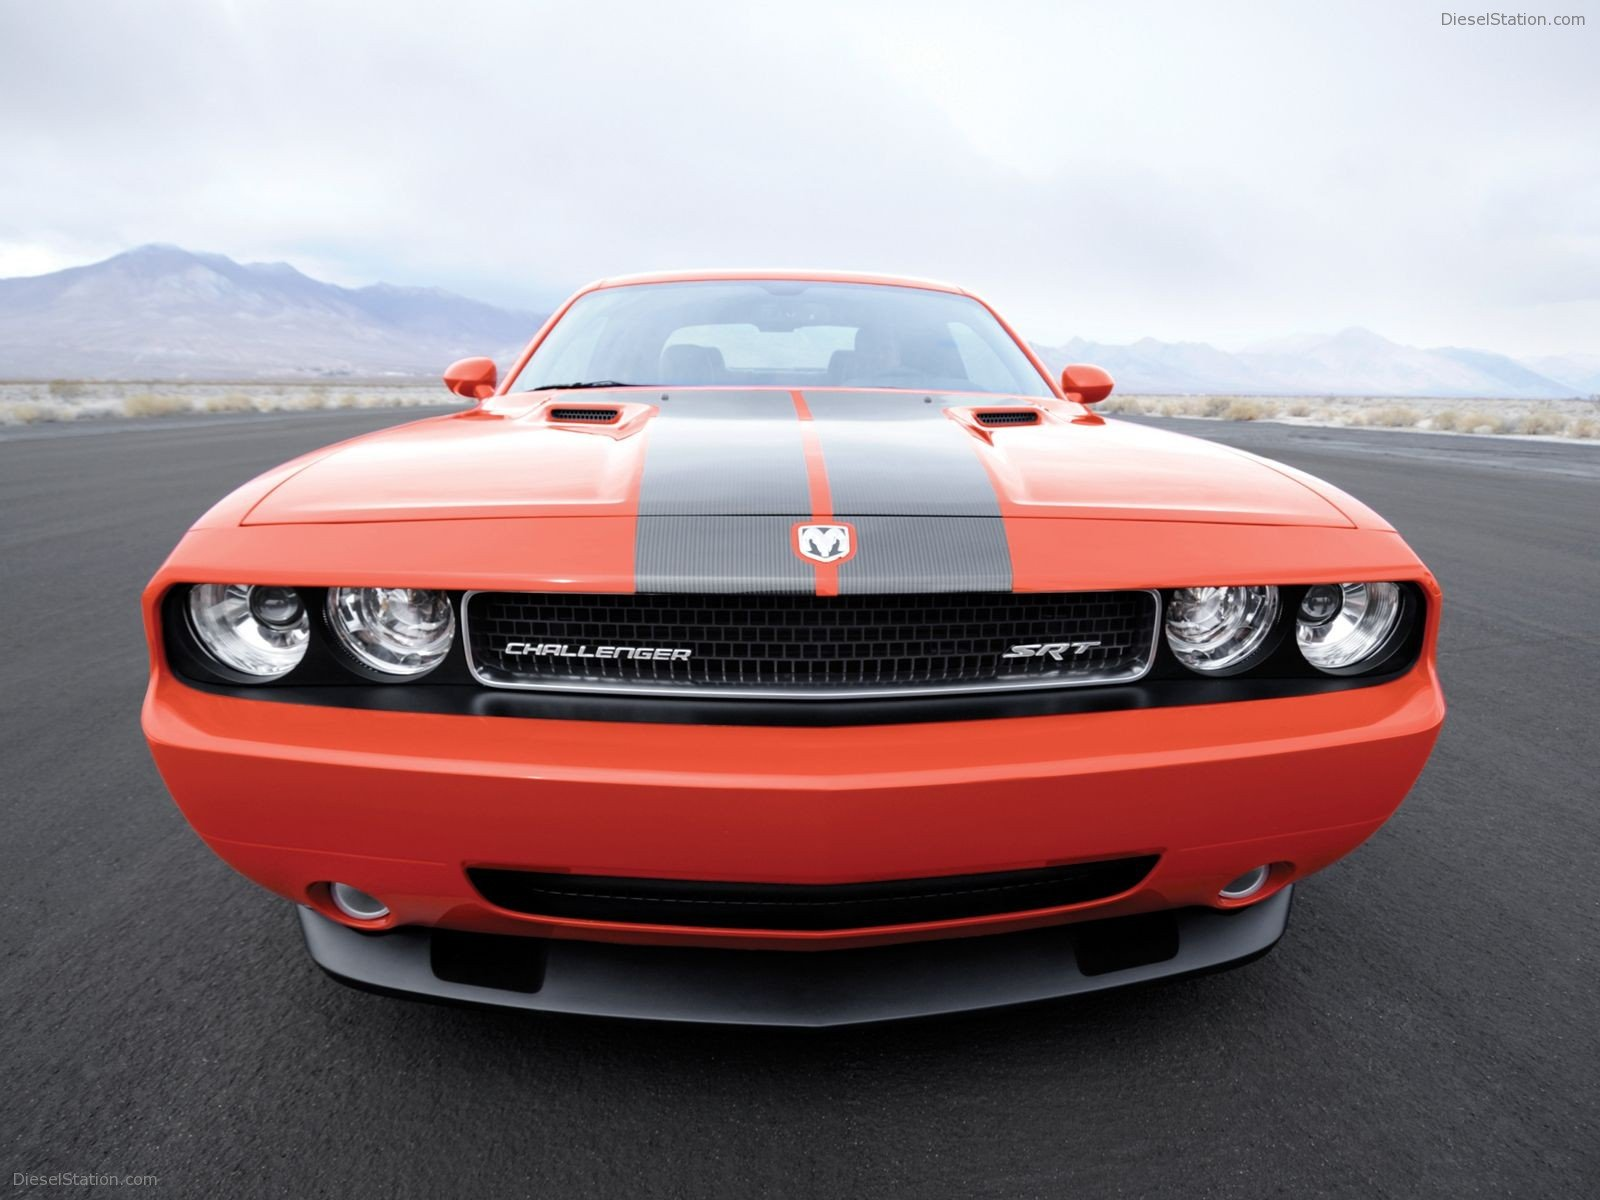 Dodge Challenger SRT8 2008 More Pictures Exotic Car Wallpaper 45 of 1600x1200